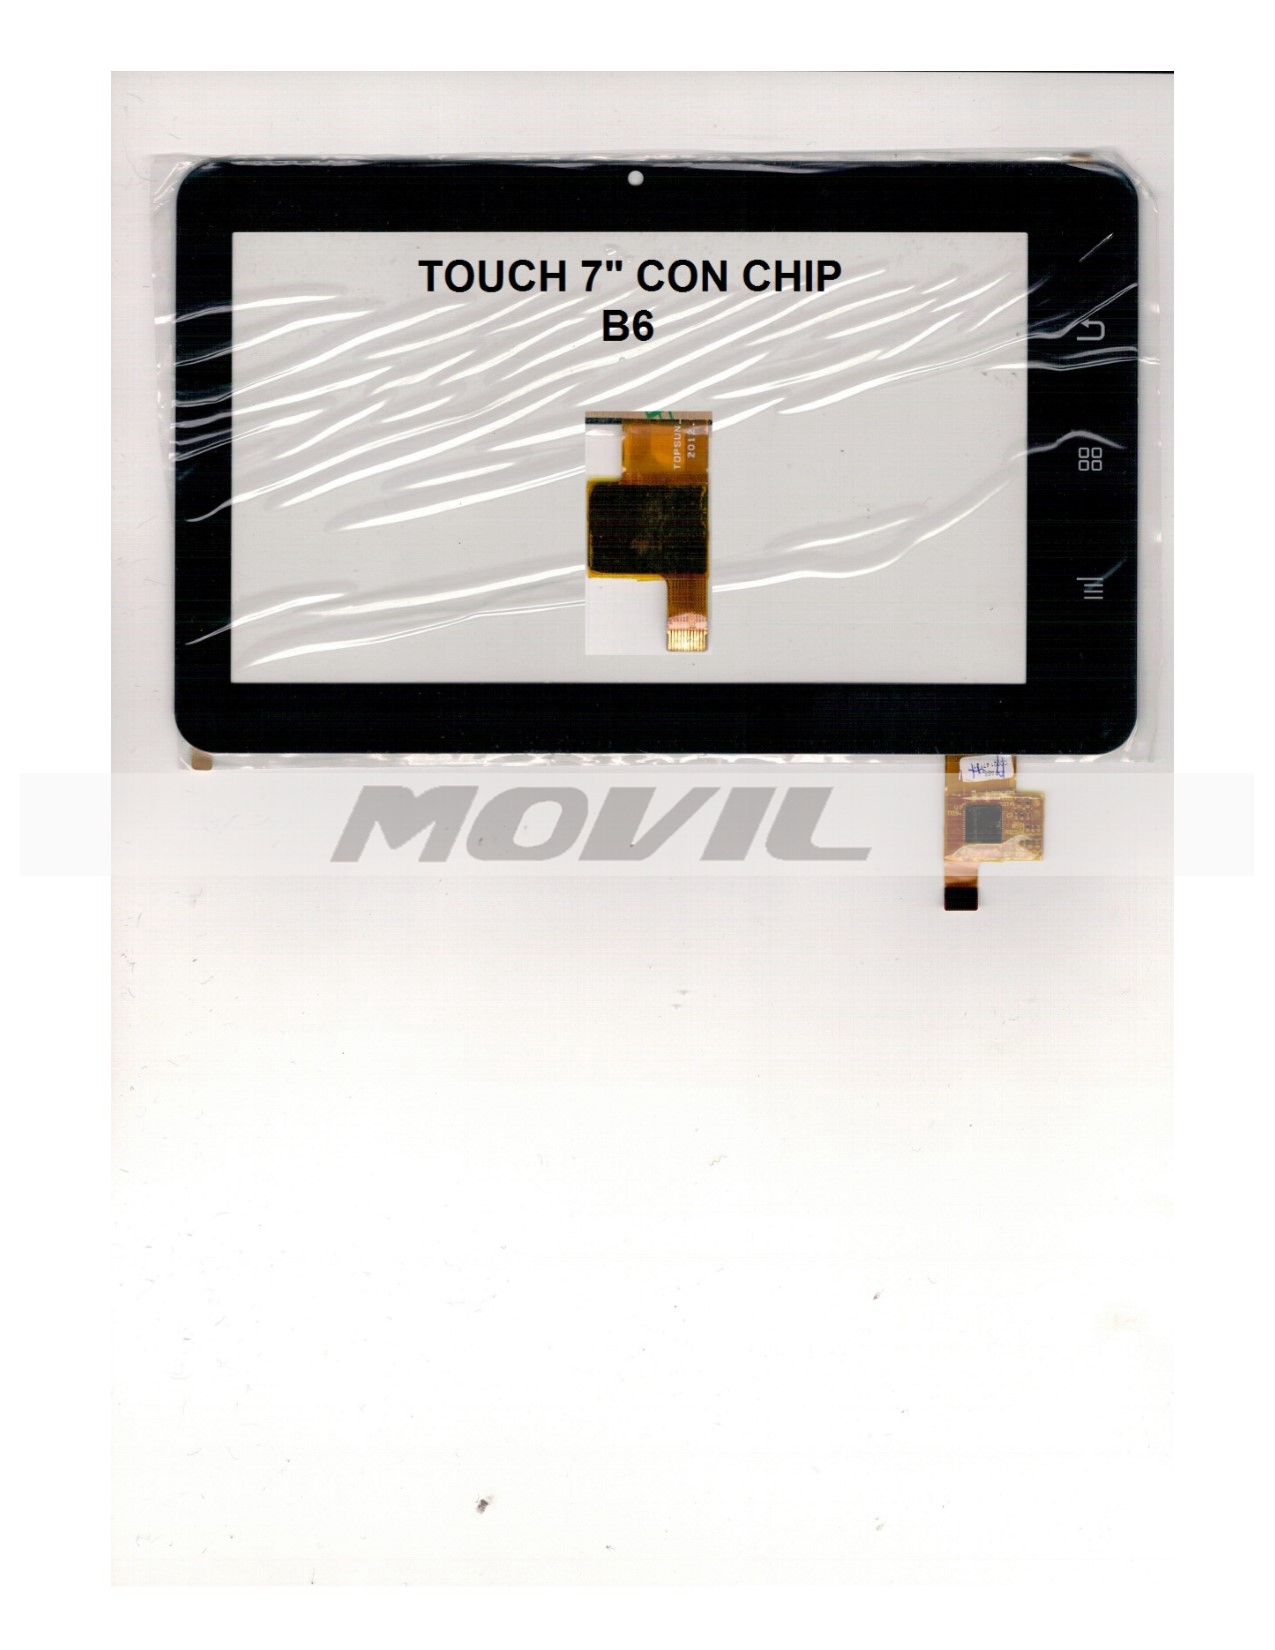 Touch tactil para tablet flex 7 inch CON CHIP B6